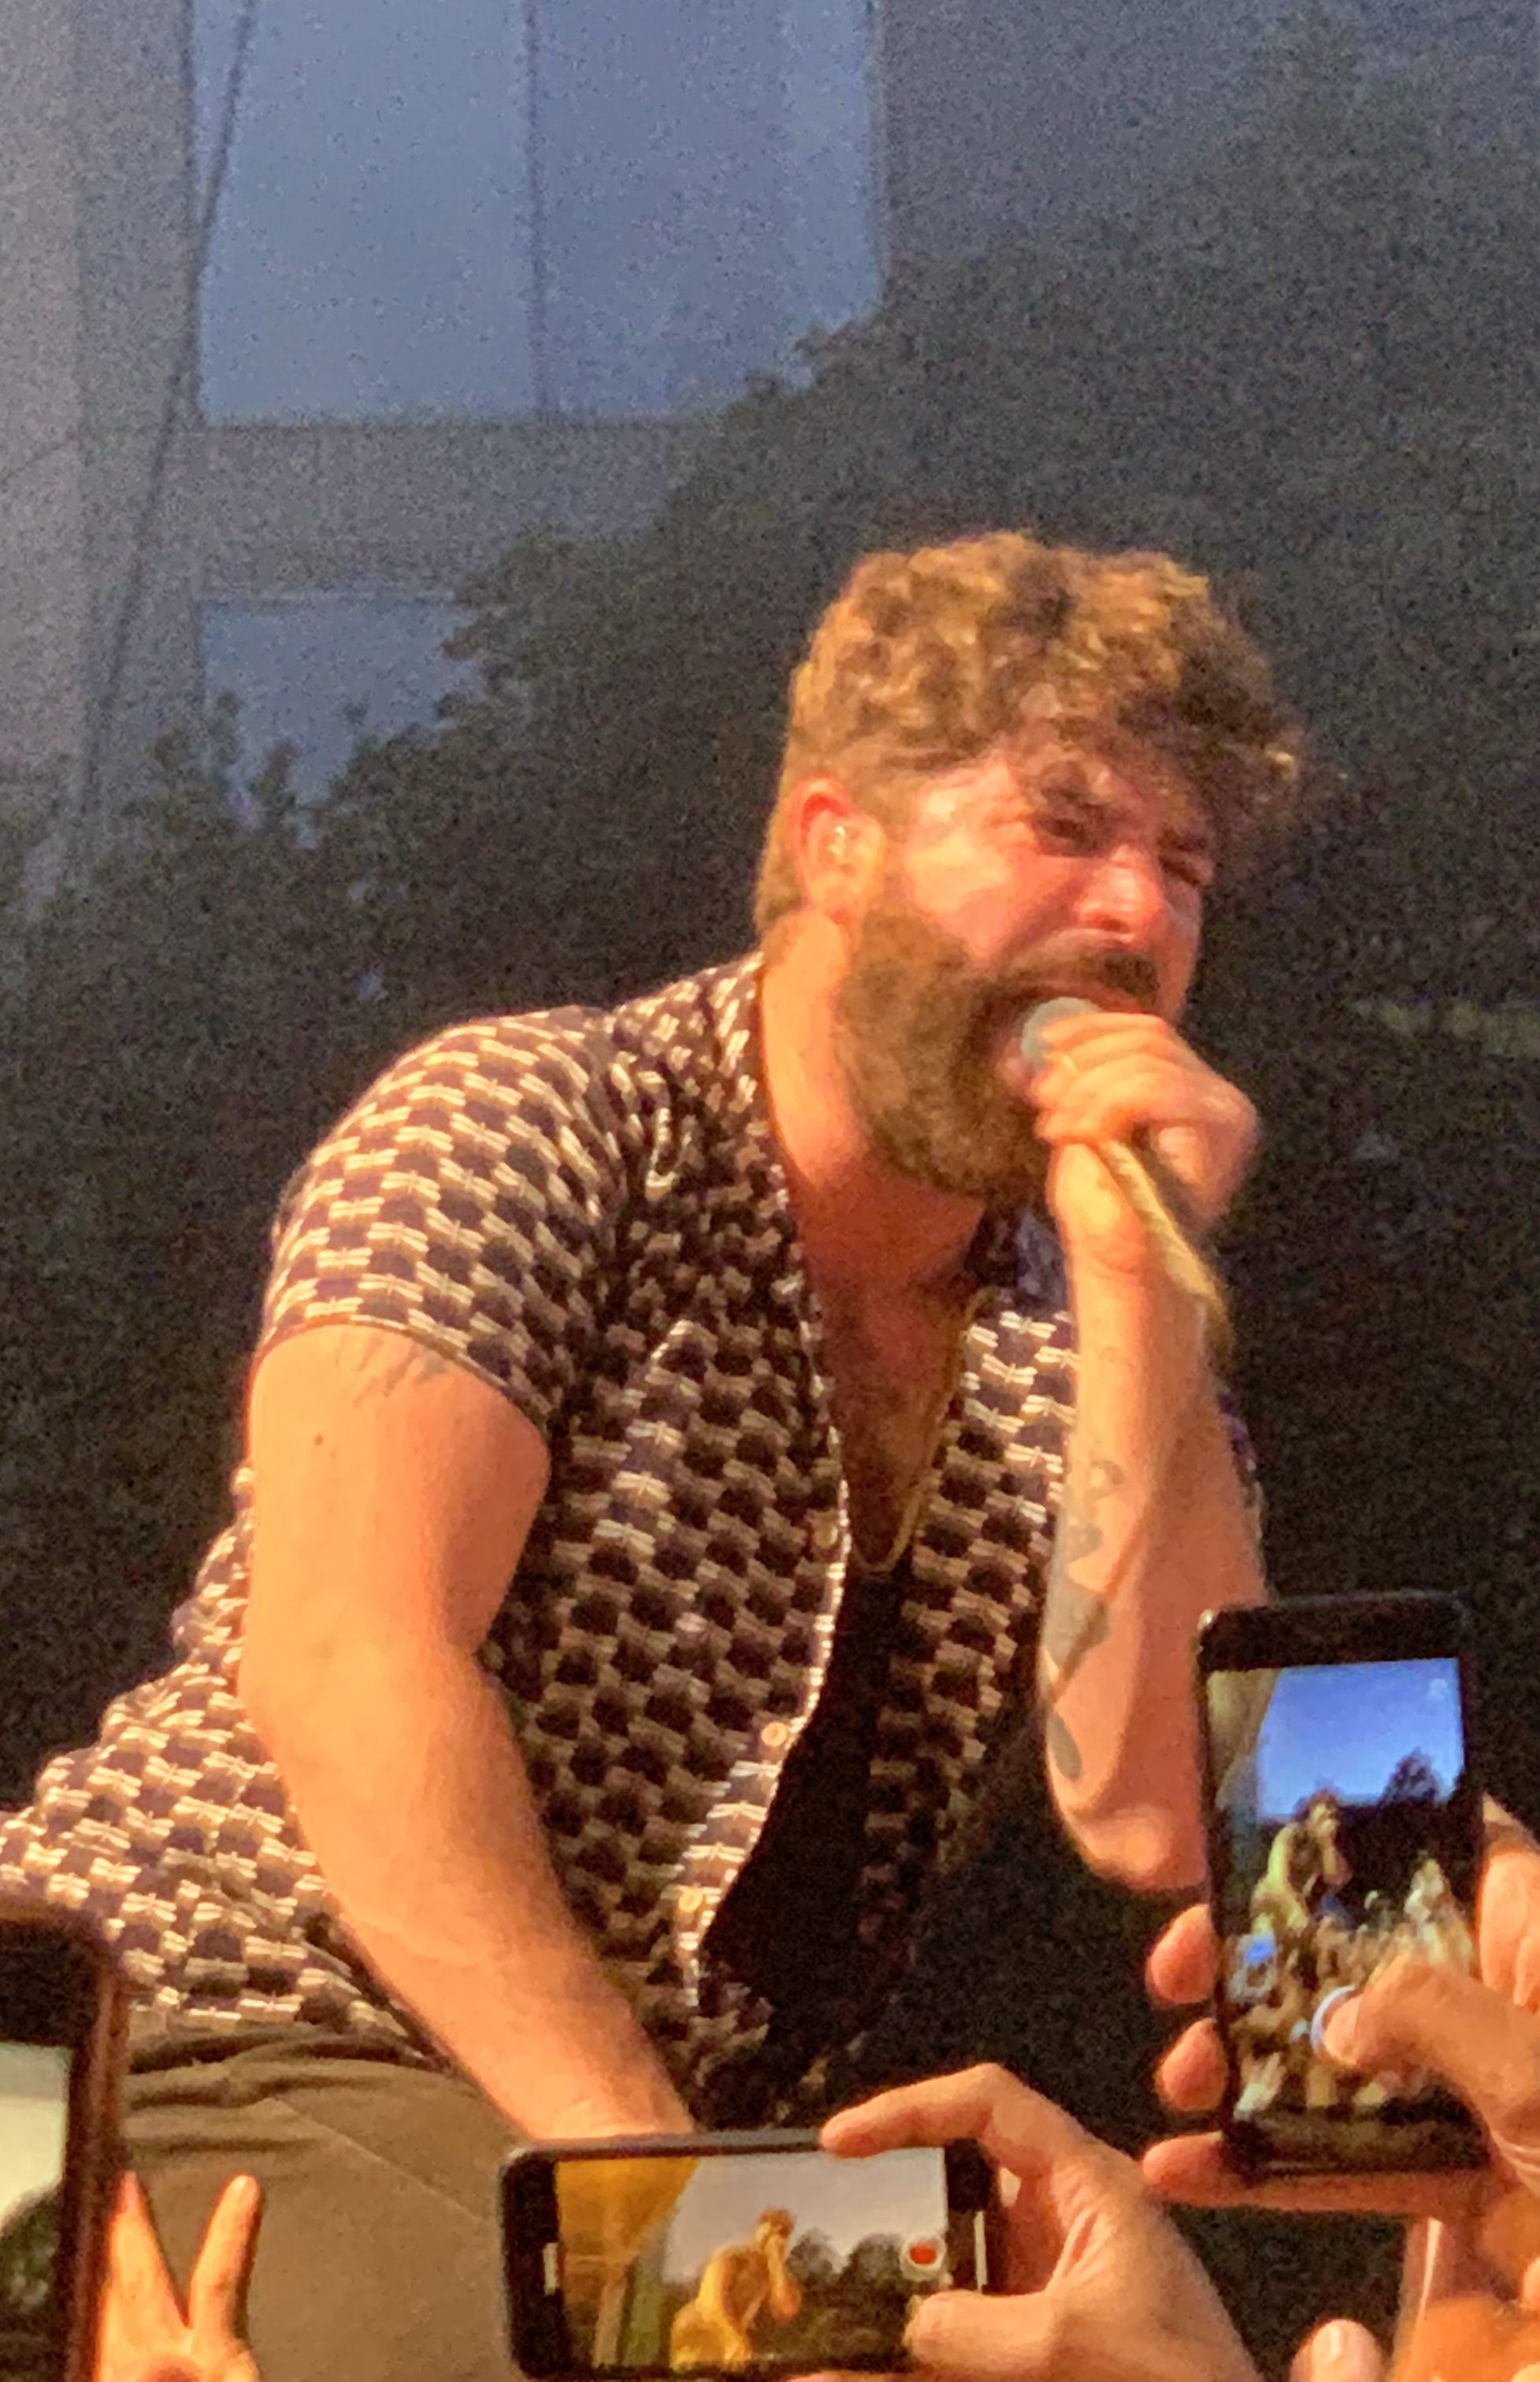 Frontman, Yannis Philippakis was a man possessed.